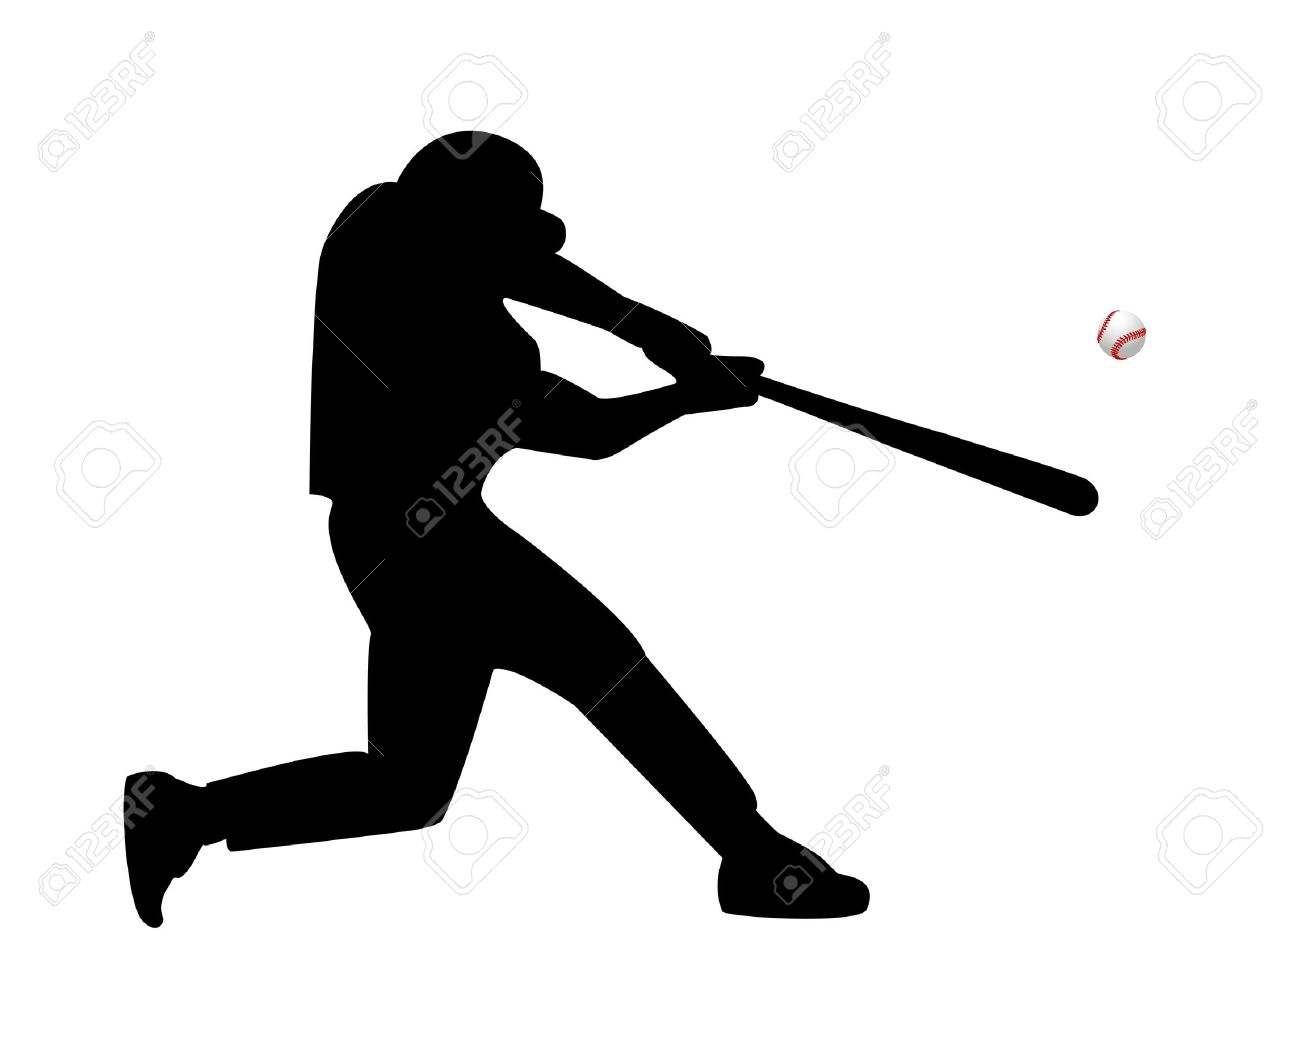 baseball player hits the ball on a white background.